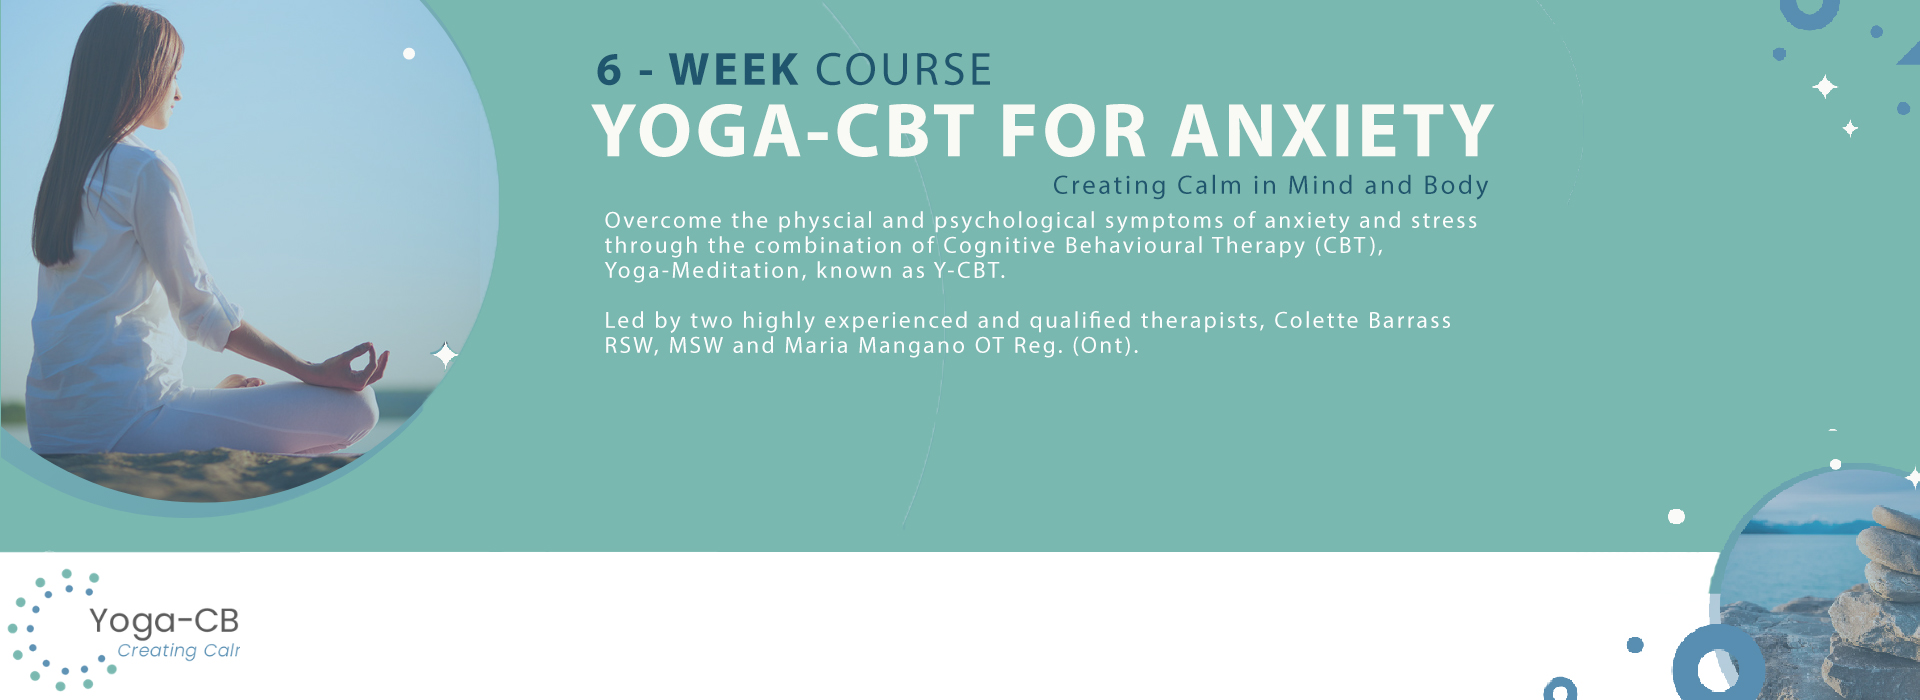 6-Weeks Yoga Course at Newlife Fertility Centre